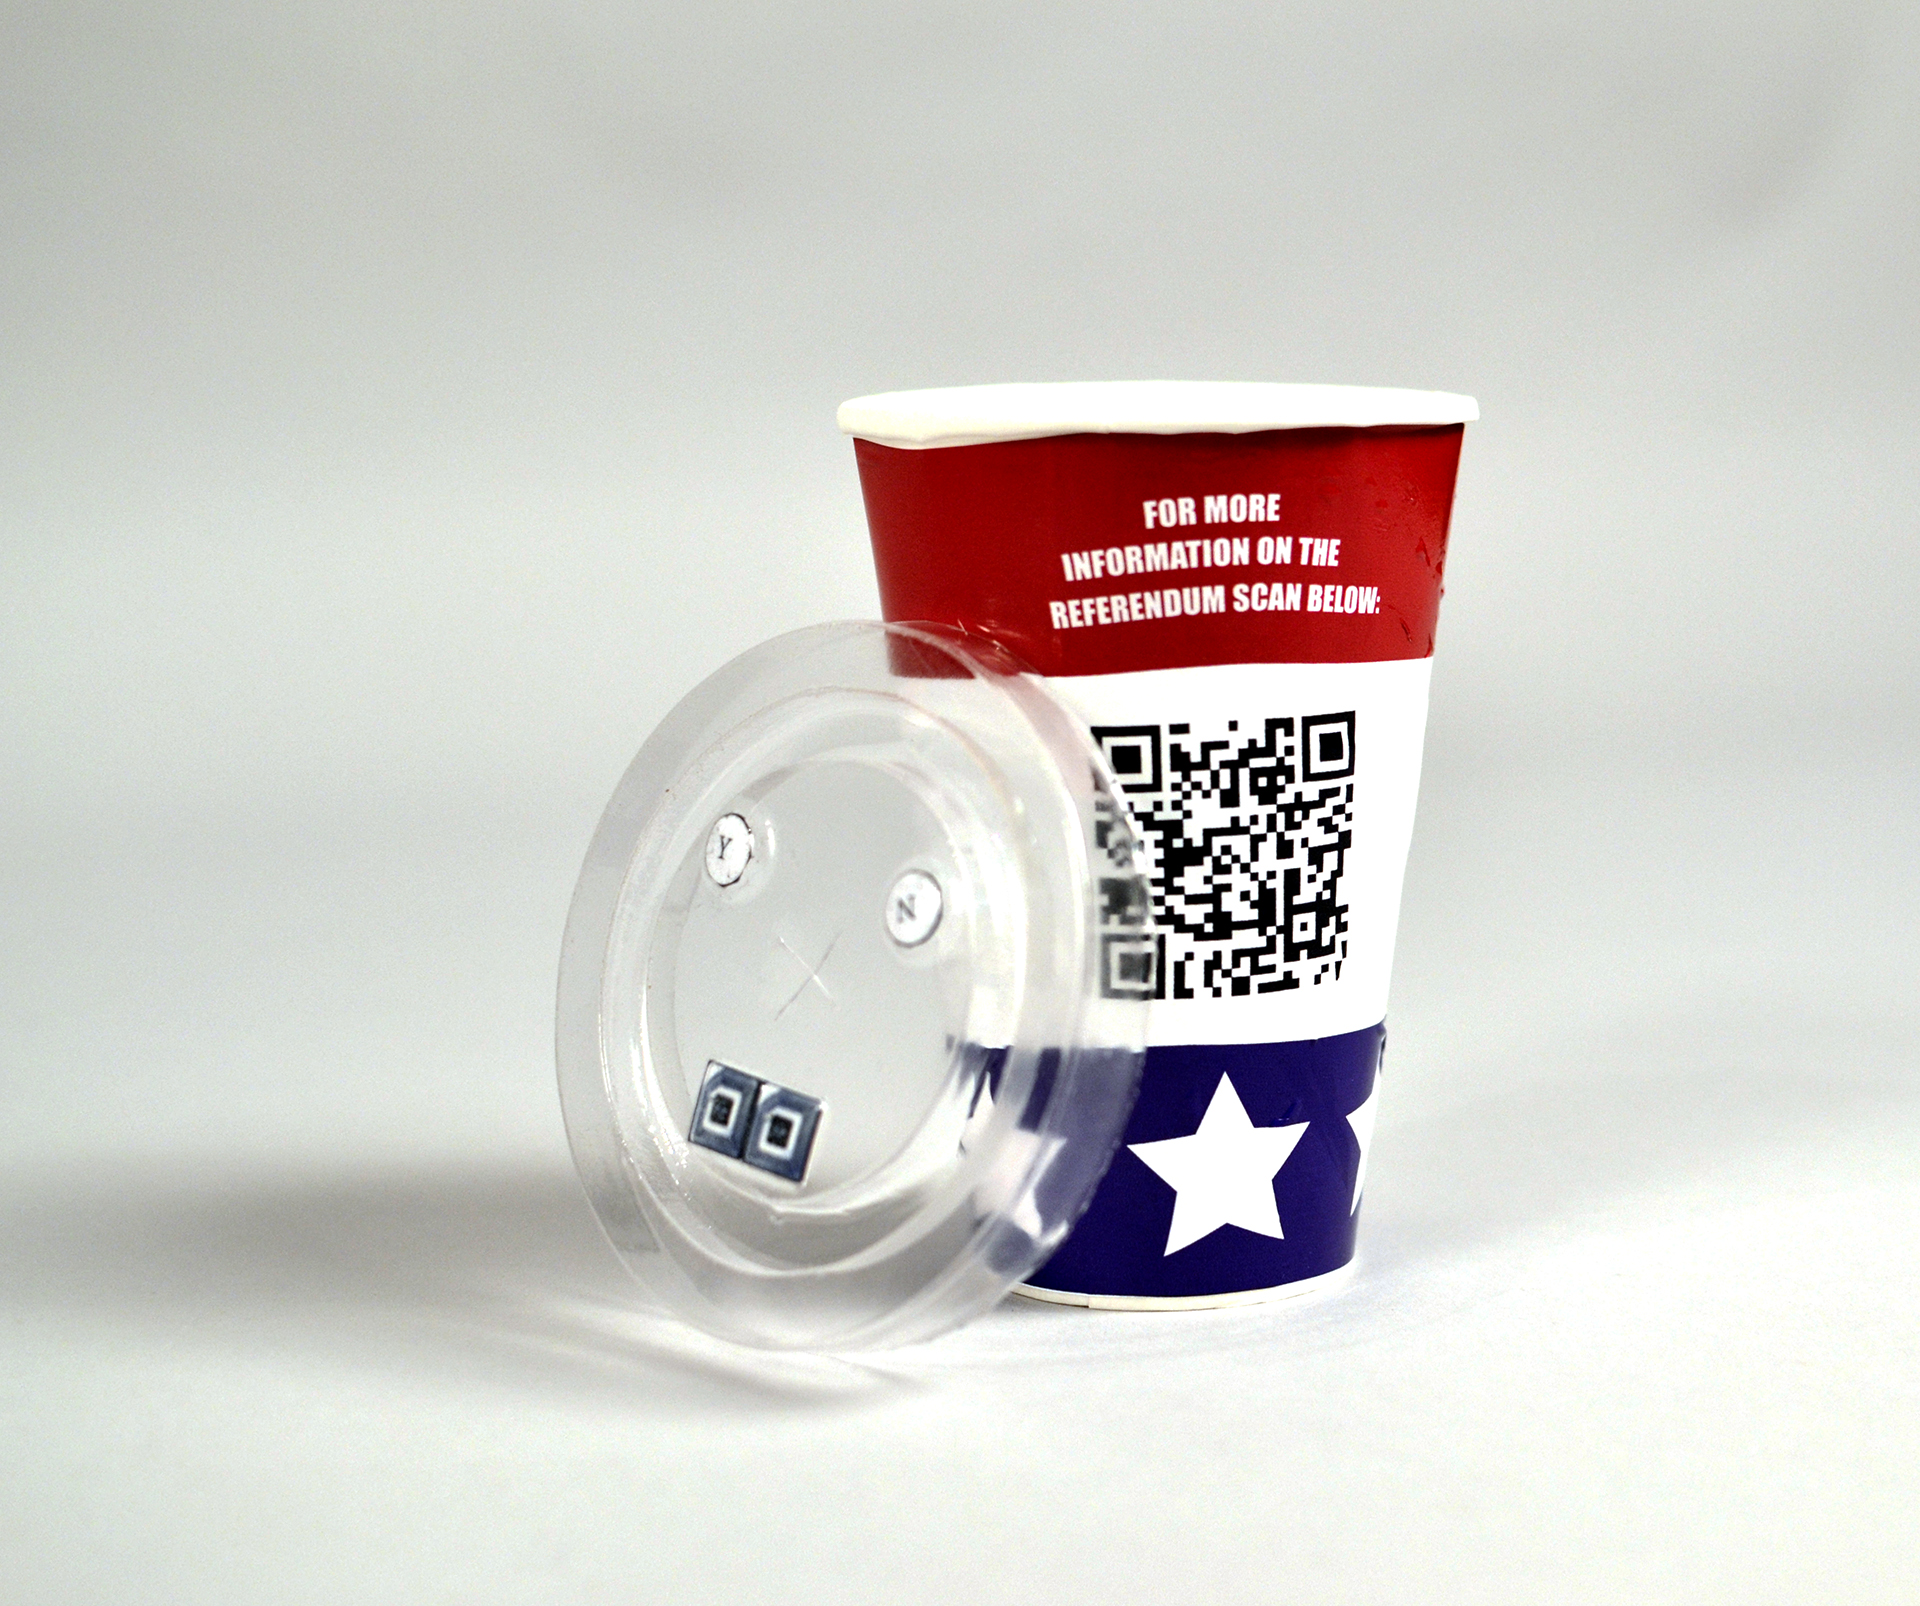 A second prototype that relied on QR codes to educate people about issues.